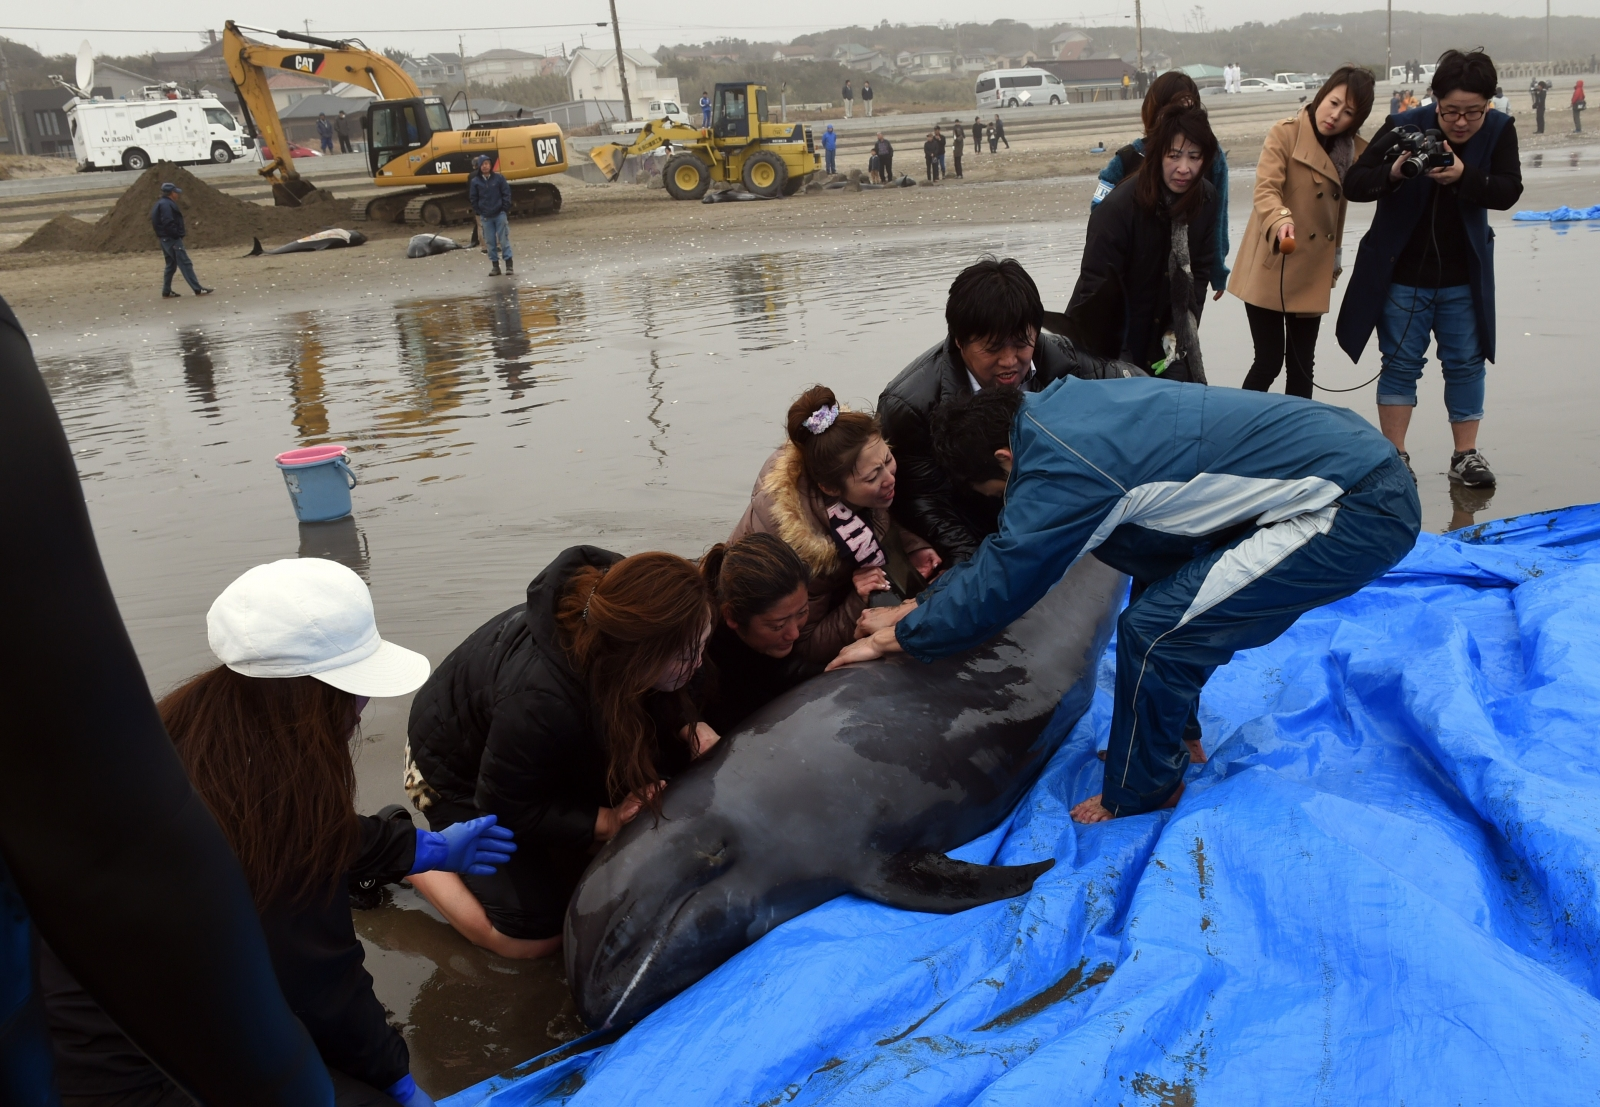 Beached dolphins - photo#16